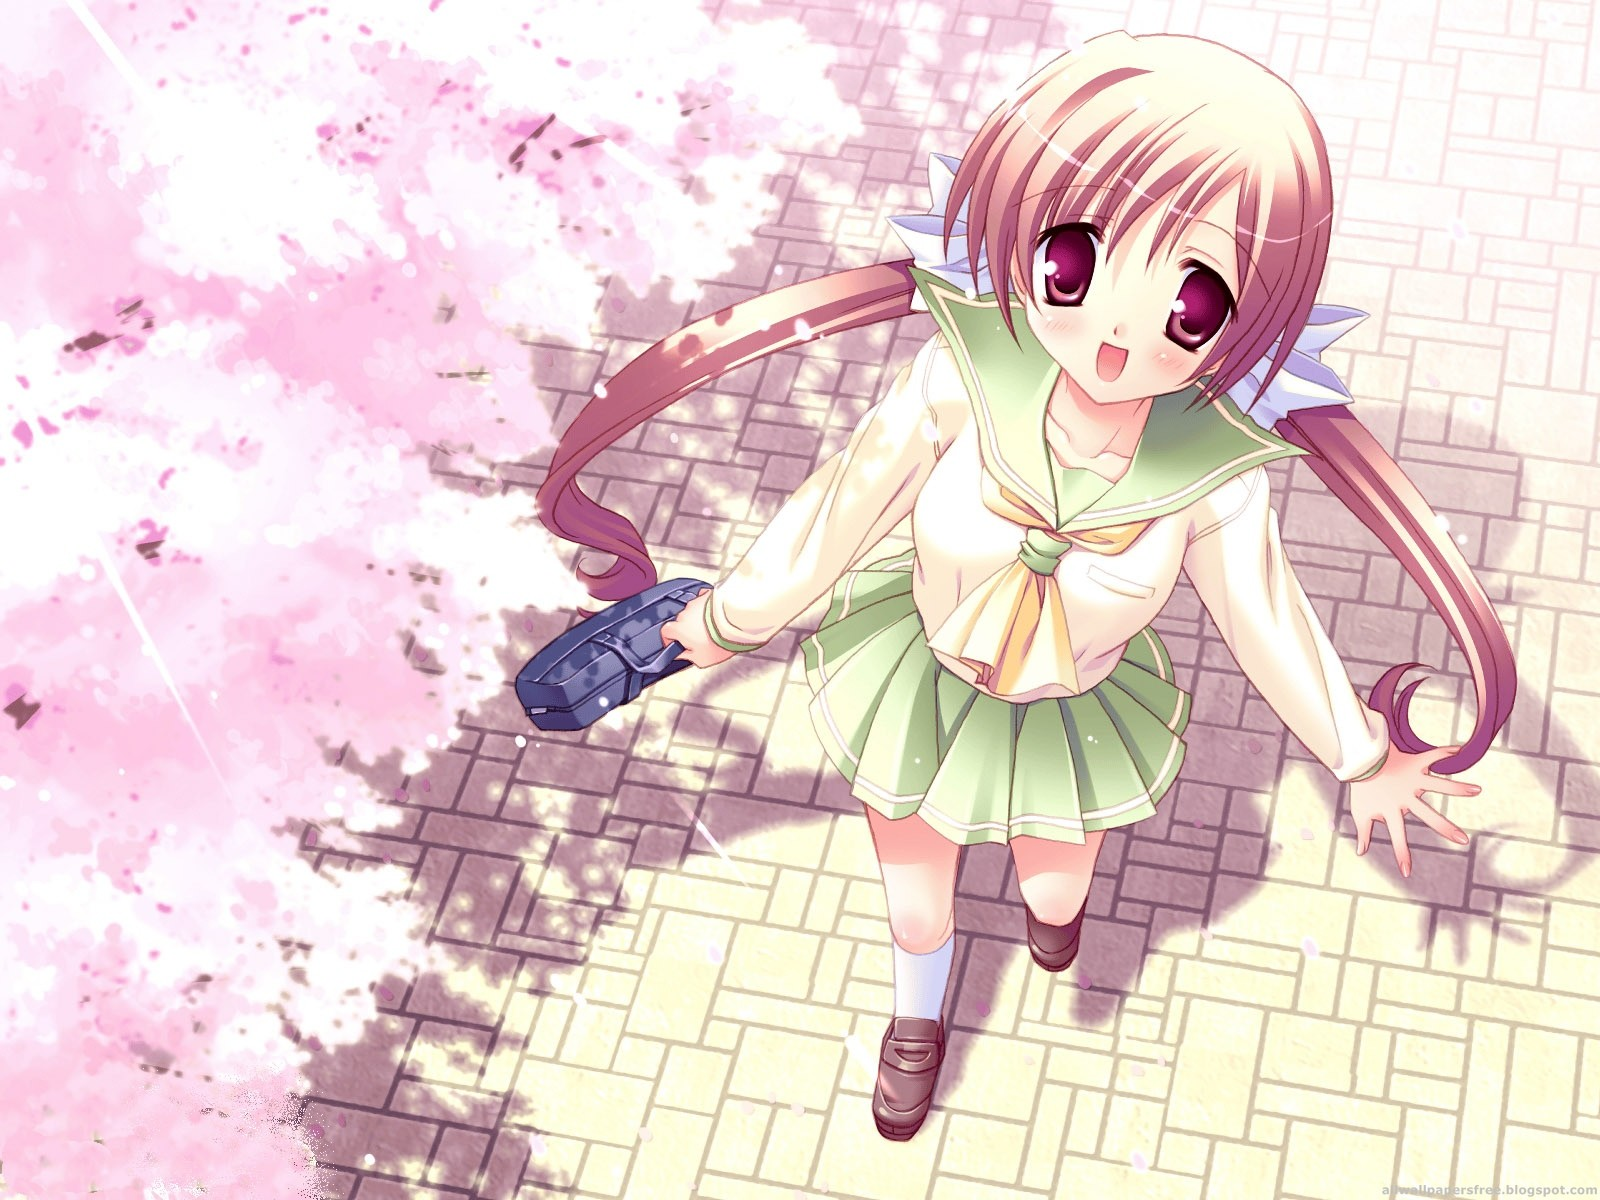 Anime girl spring blossoms